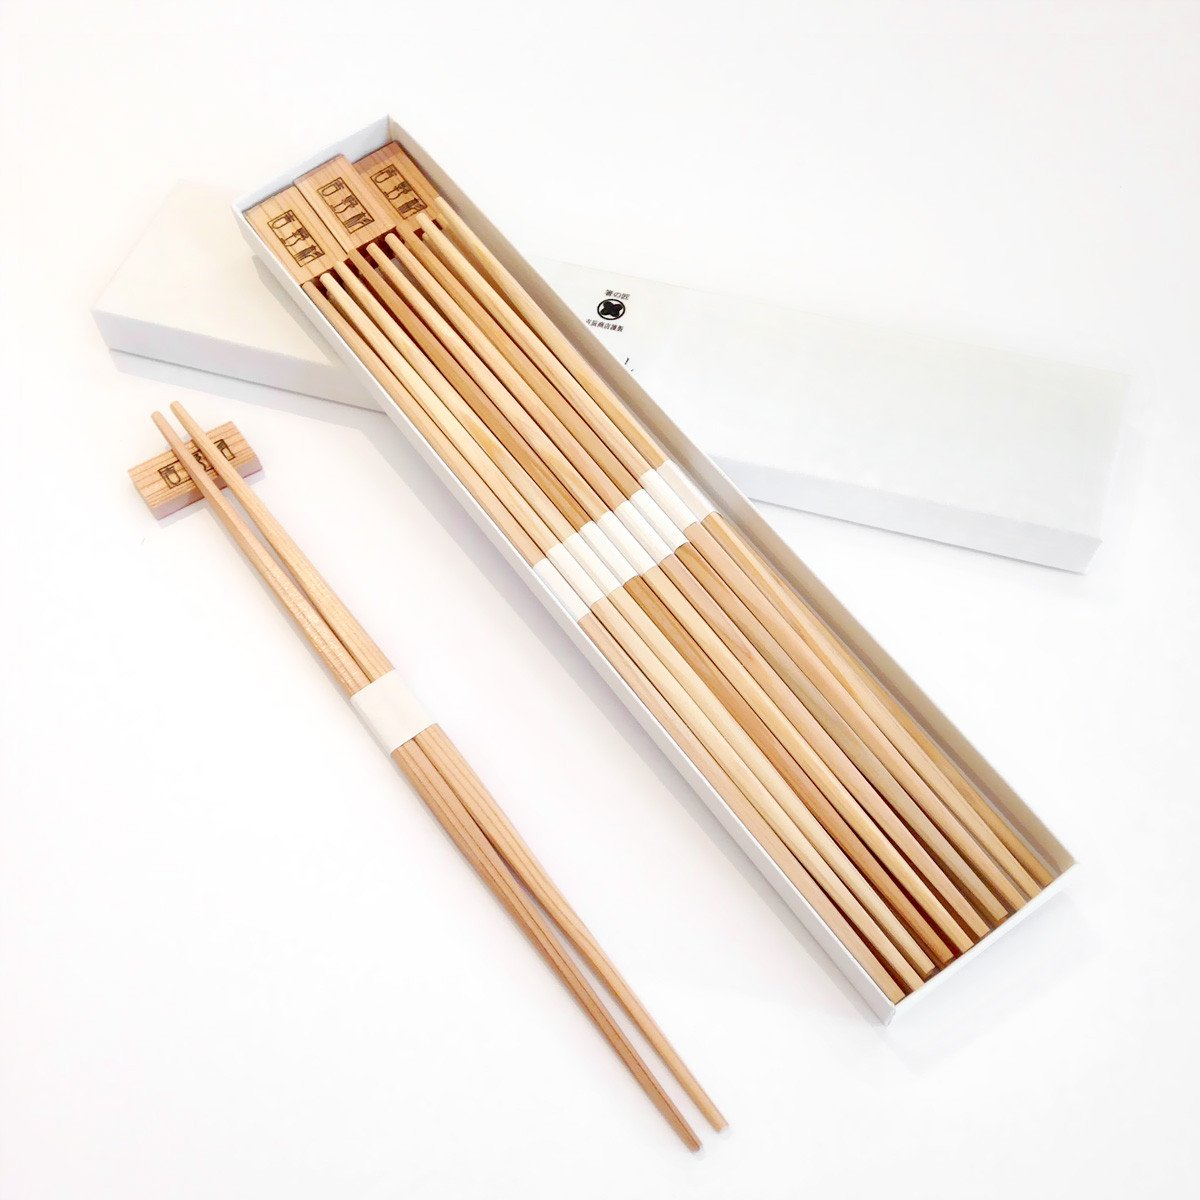 Yoshino Cedar Chopsticks-Set of 10 Pair Chopsticks and 6 Rests